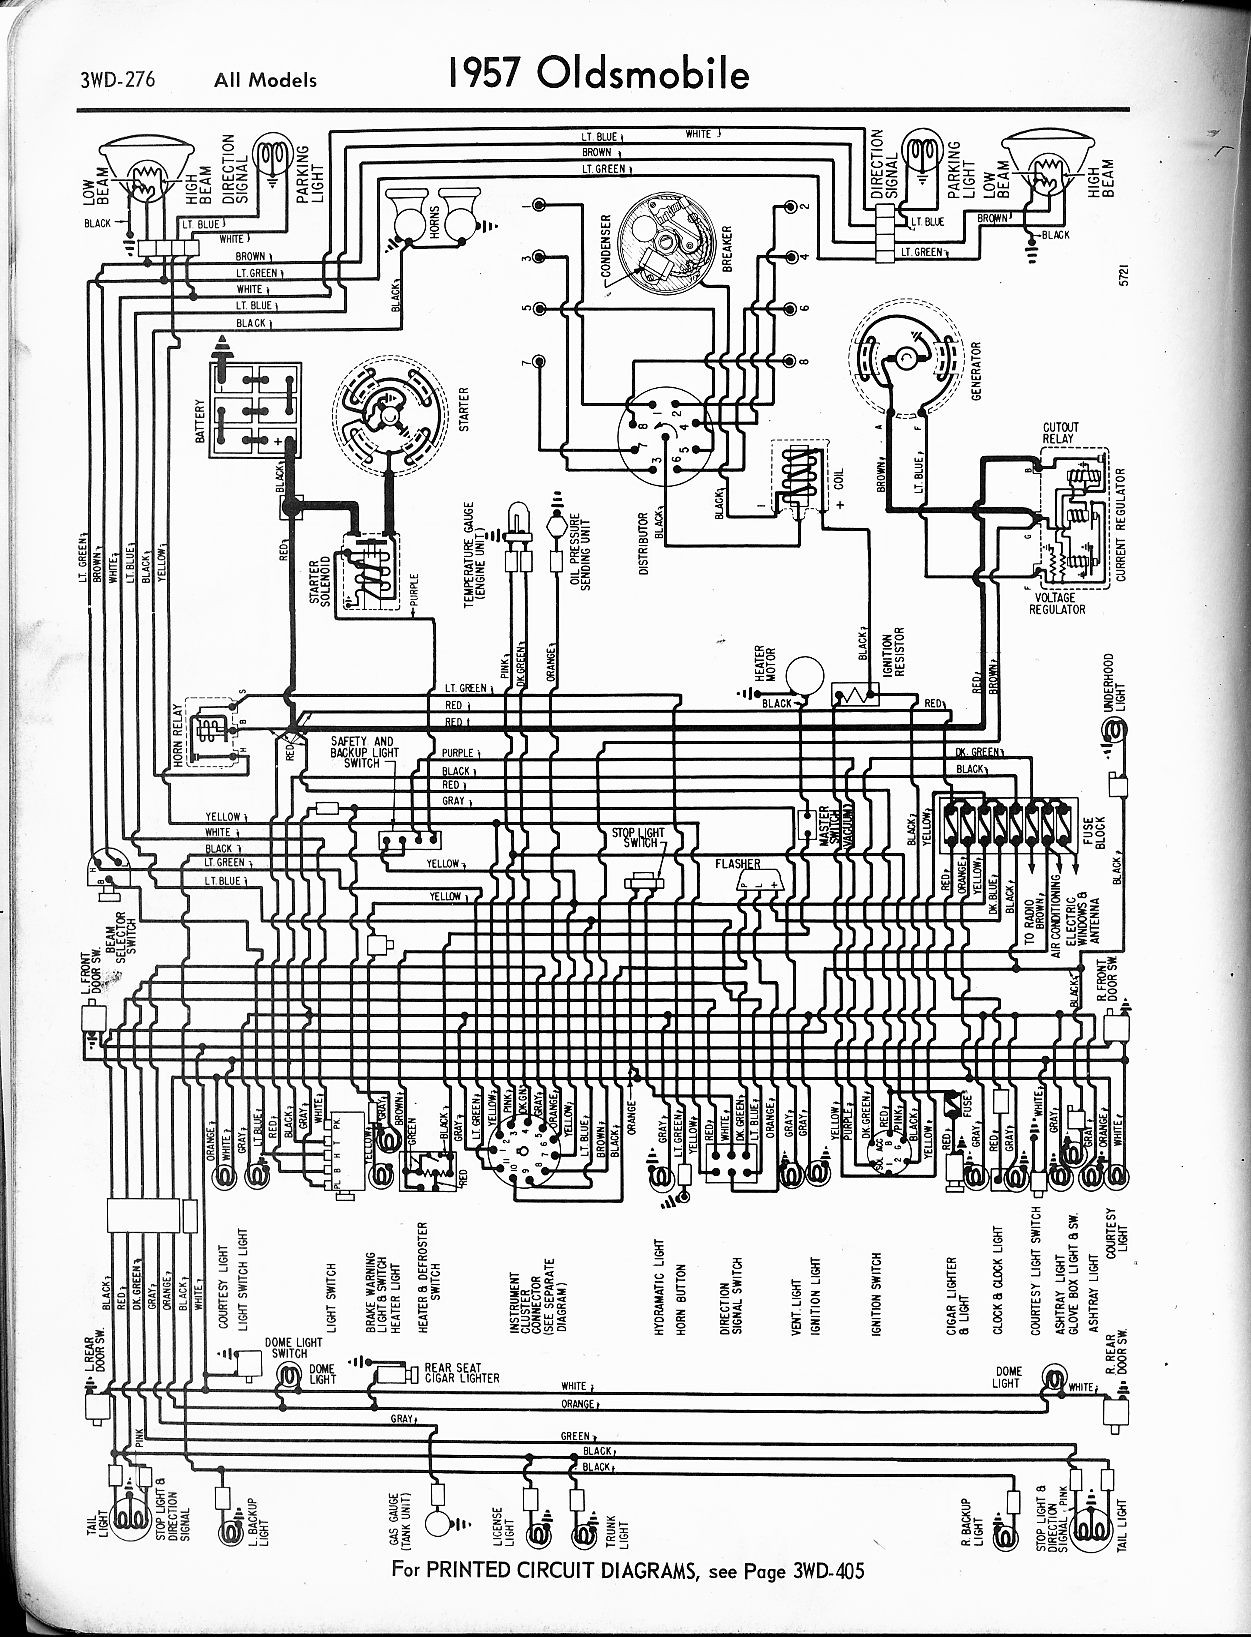 94 Toyota 4runner Engine Diagram Vw Transporter Wiring 95 1994 Olds 98 Diagrams Info Of